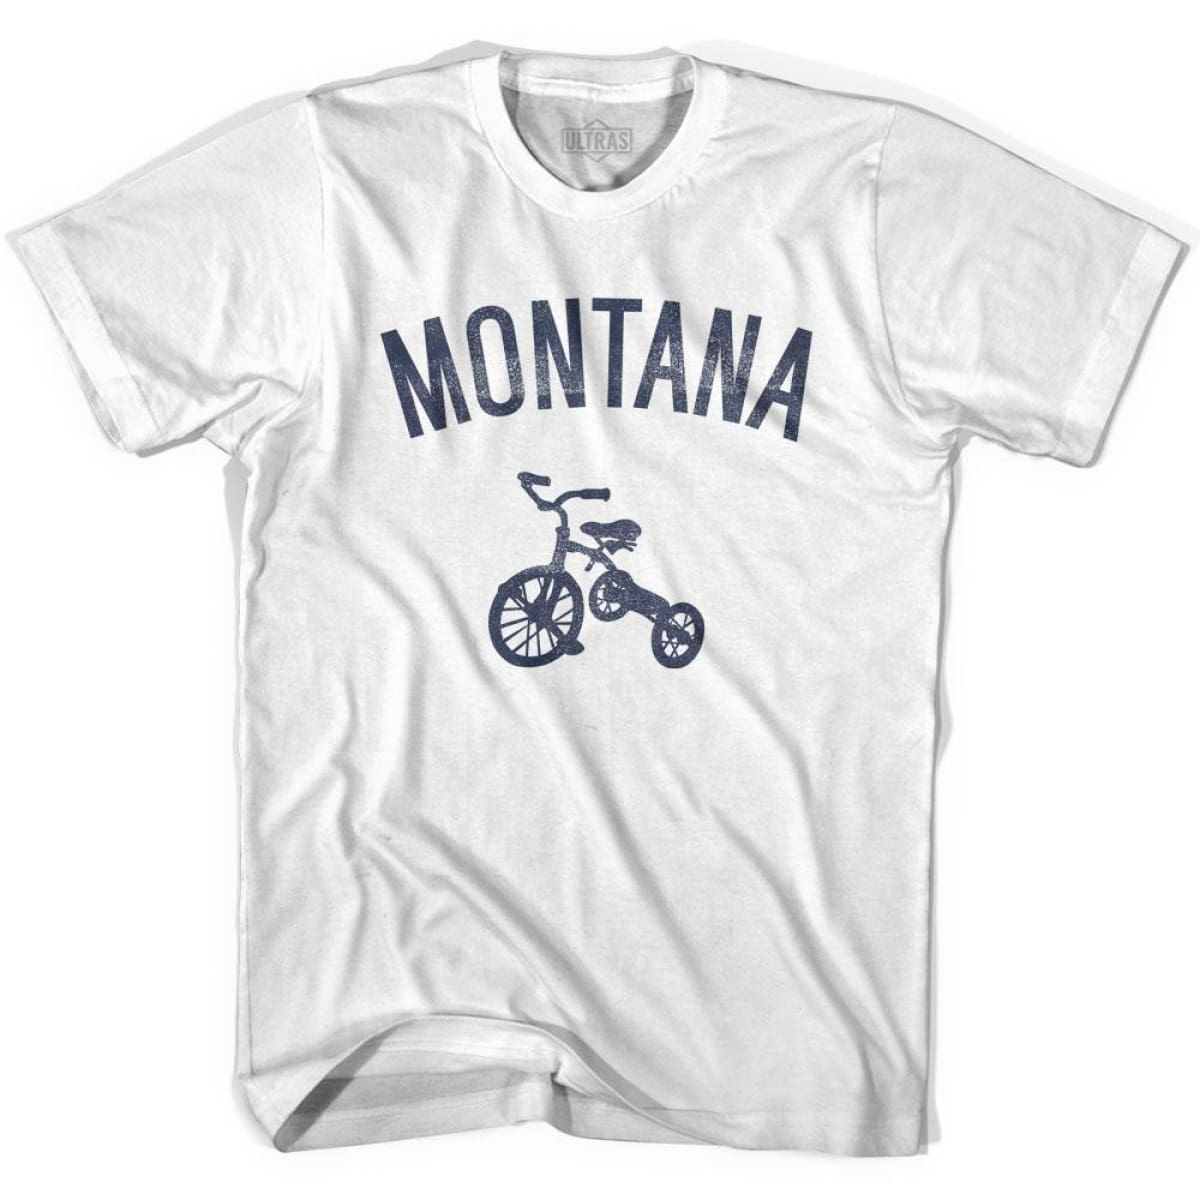 Montana State Tricycle Youth Cotton T-shirt - White / Youth X-Small - Tricycle State